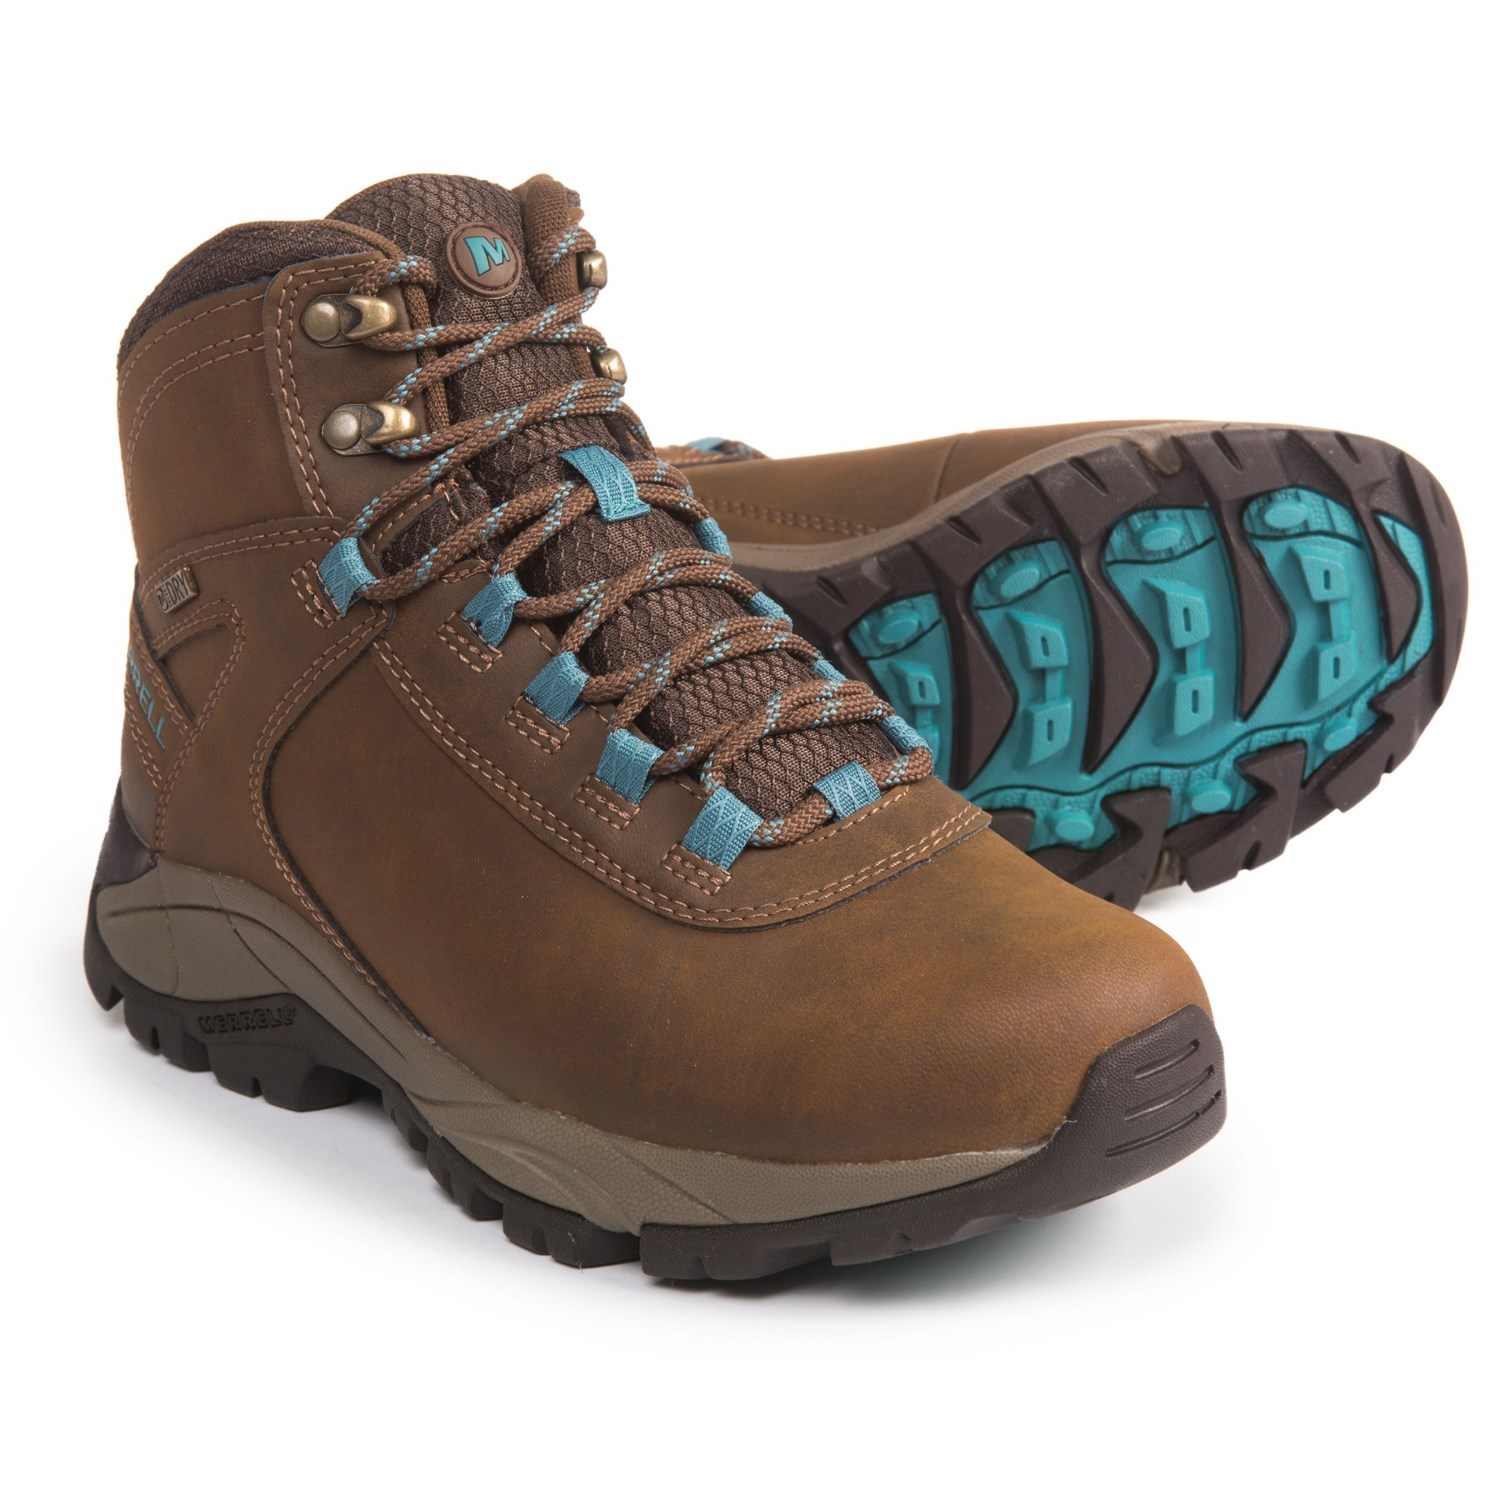 Merrell Vego Mid LTR Hiking Boots (For